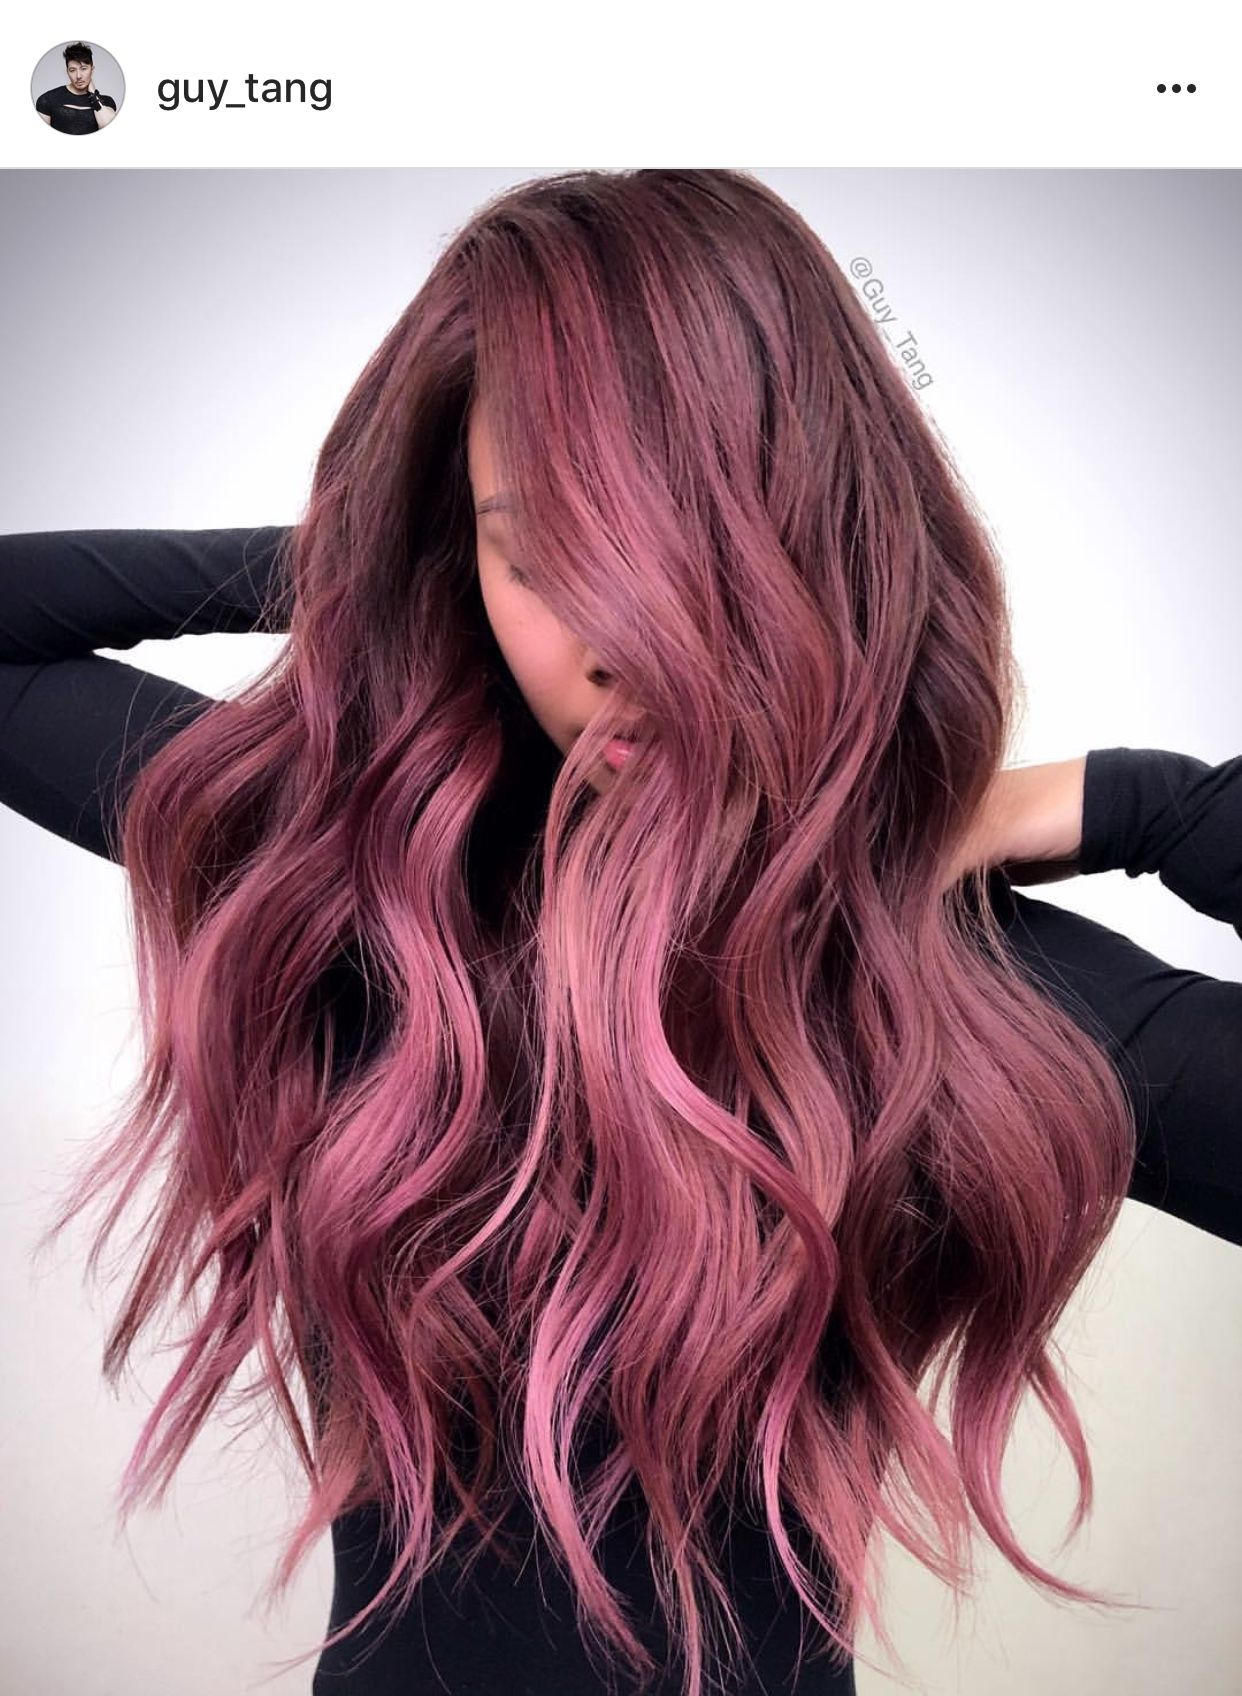 This Dark Rose Hair Shade Is Stunning Hair Styles Hair Color Pink Hair